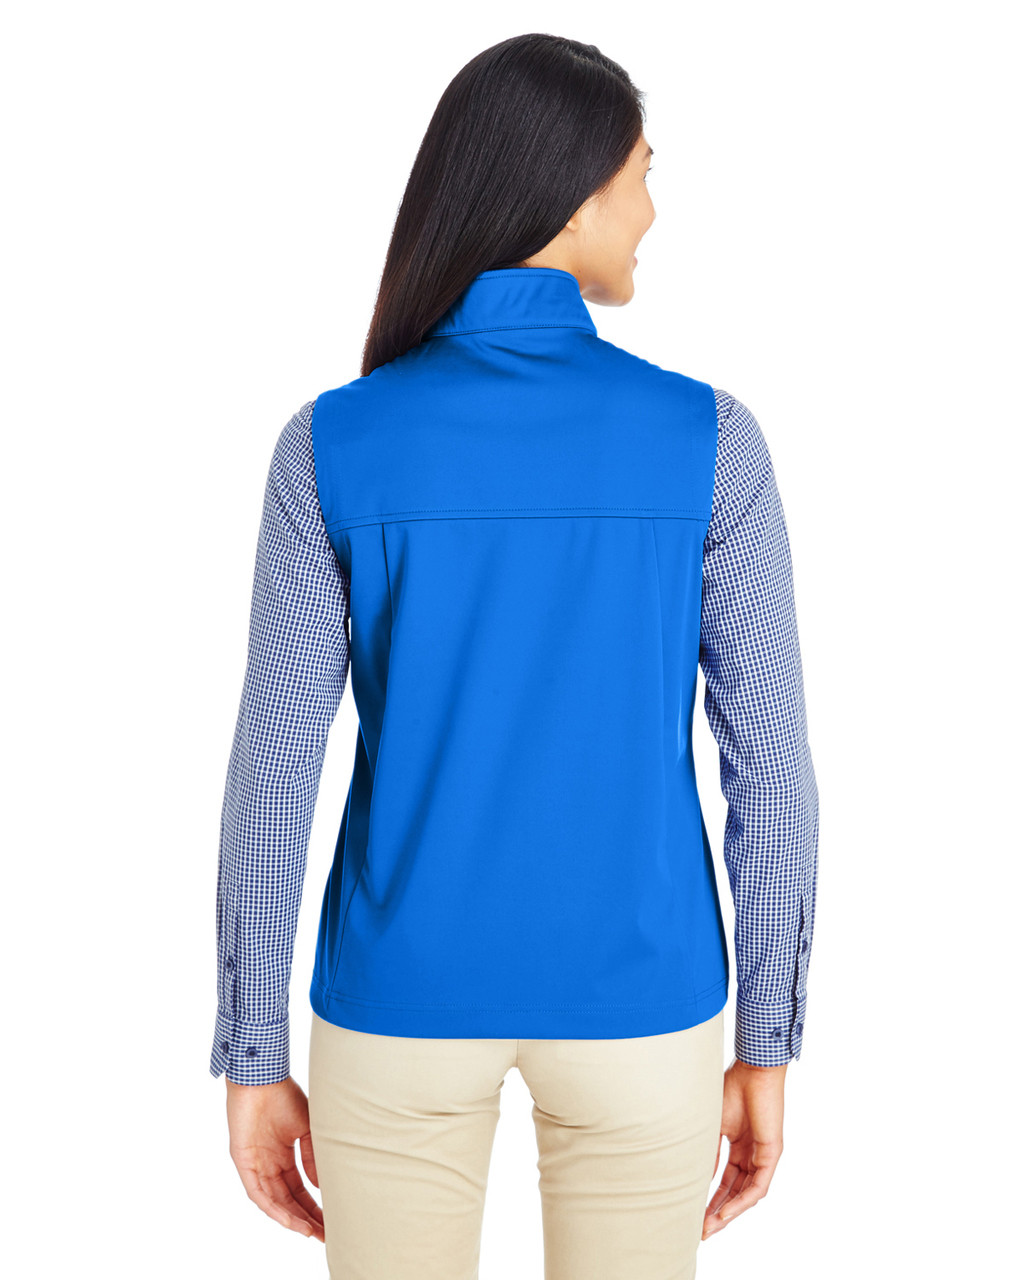 True Royal - Back  CE709W Ash City - Core 365 Ladies' Techno Lite Three-Layer Knit Tech-Shell Quarter-Zip Vest | Blankclothing.ca